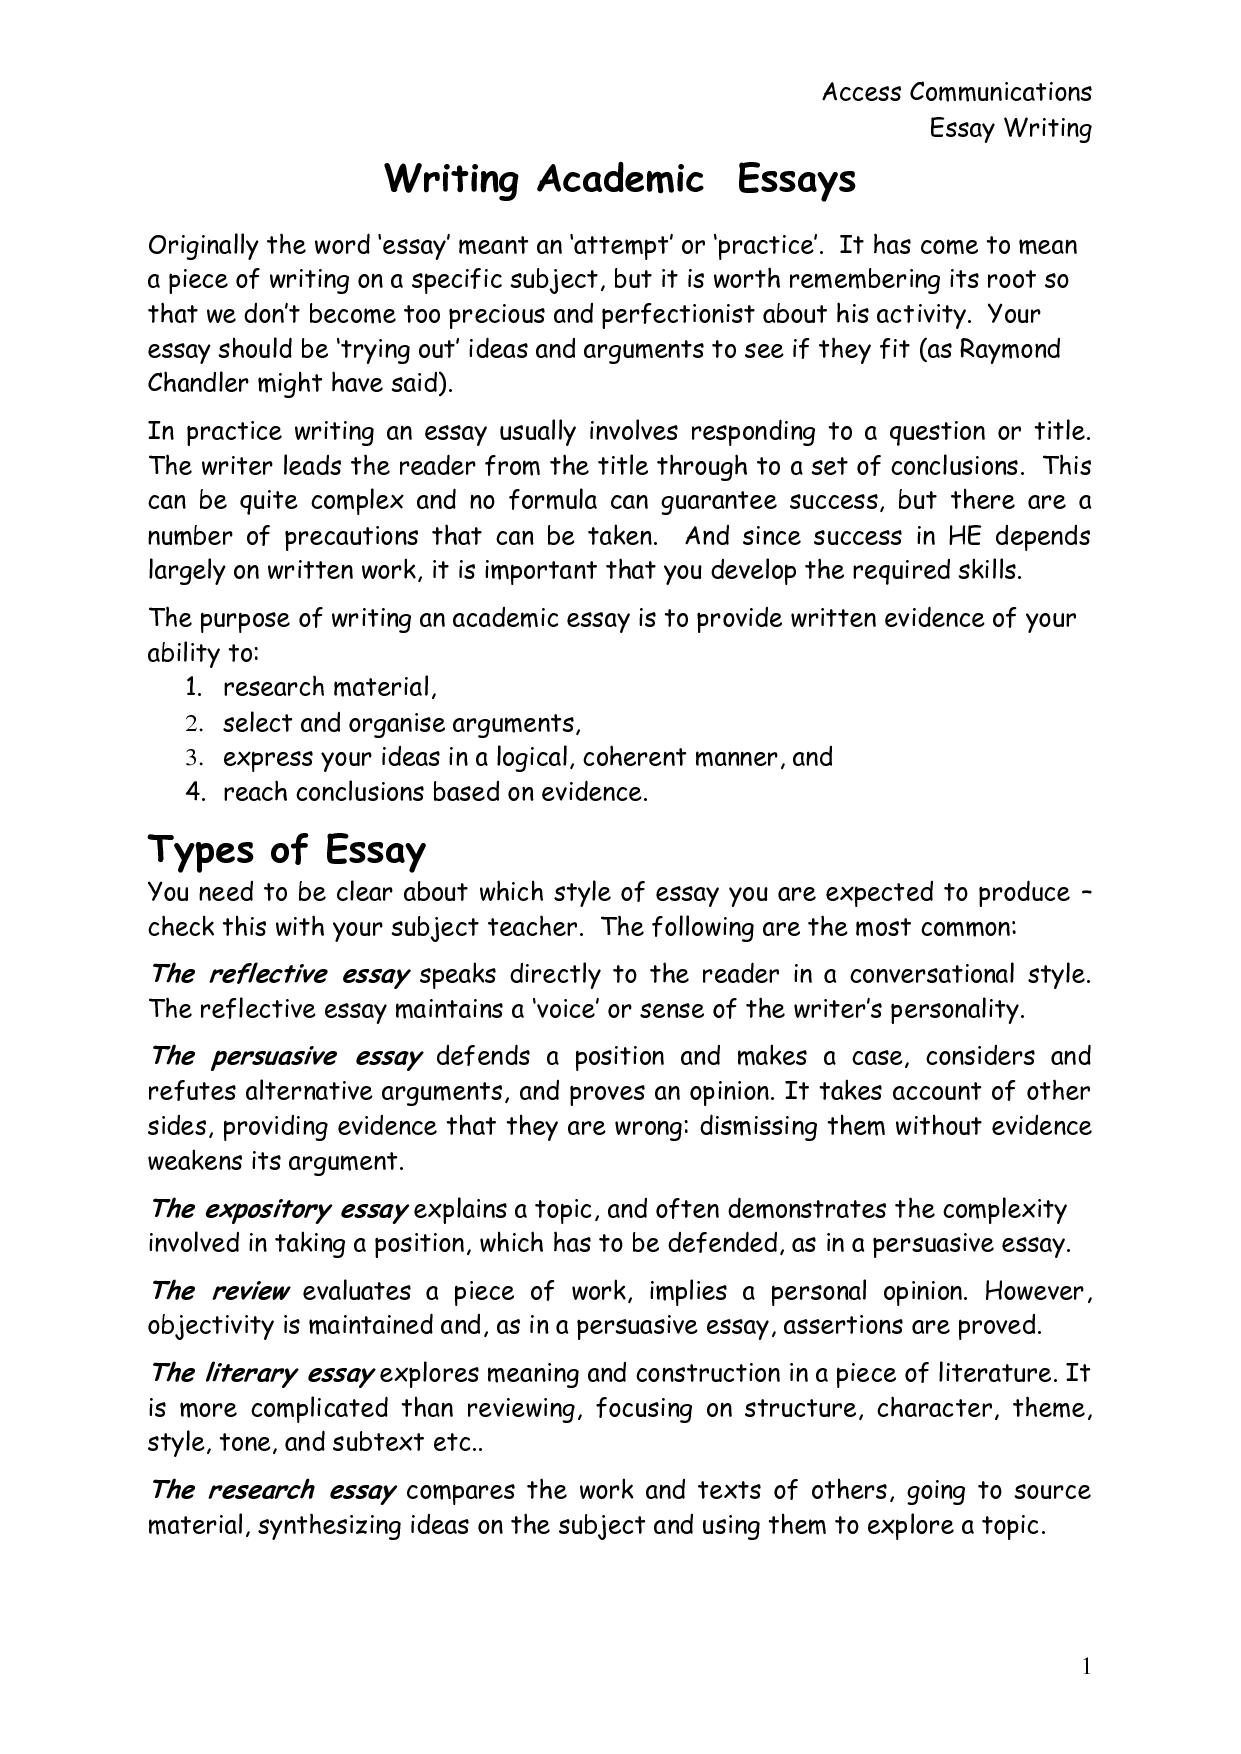 021 Essay Example Write An For Me Surprising Meaning In Gujarati Free My Online Full